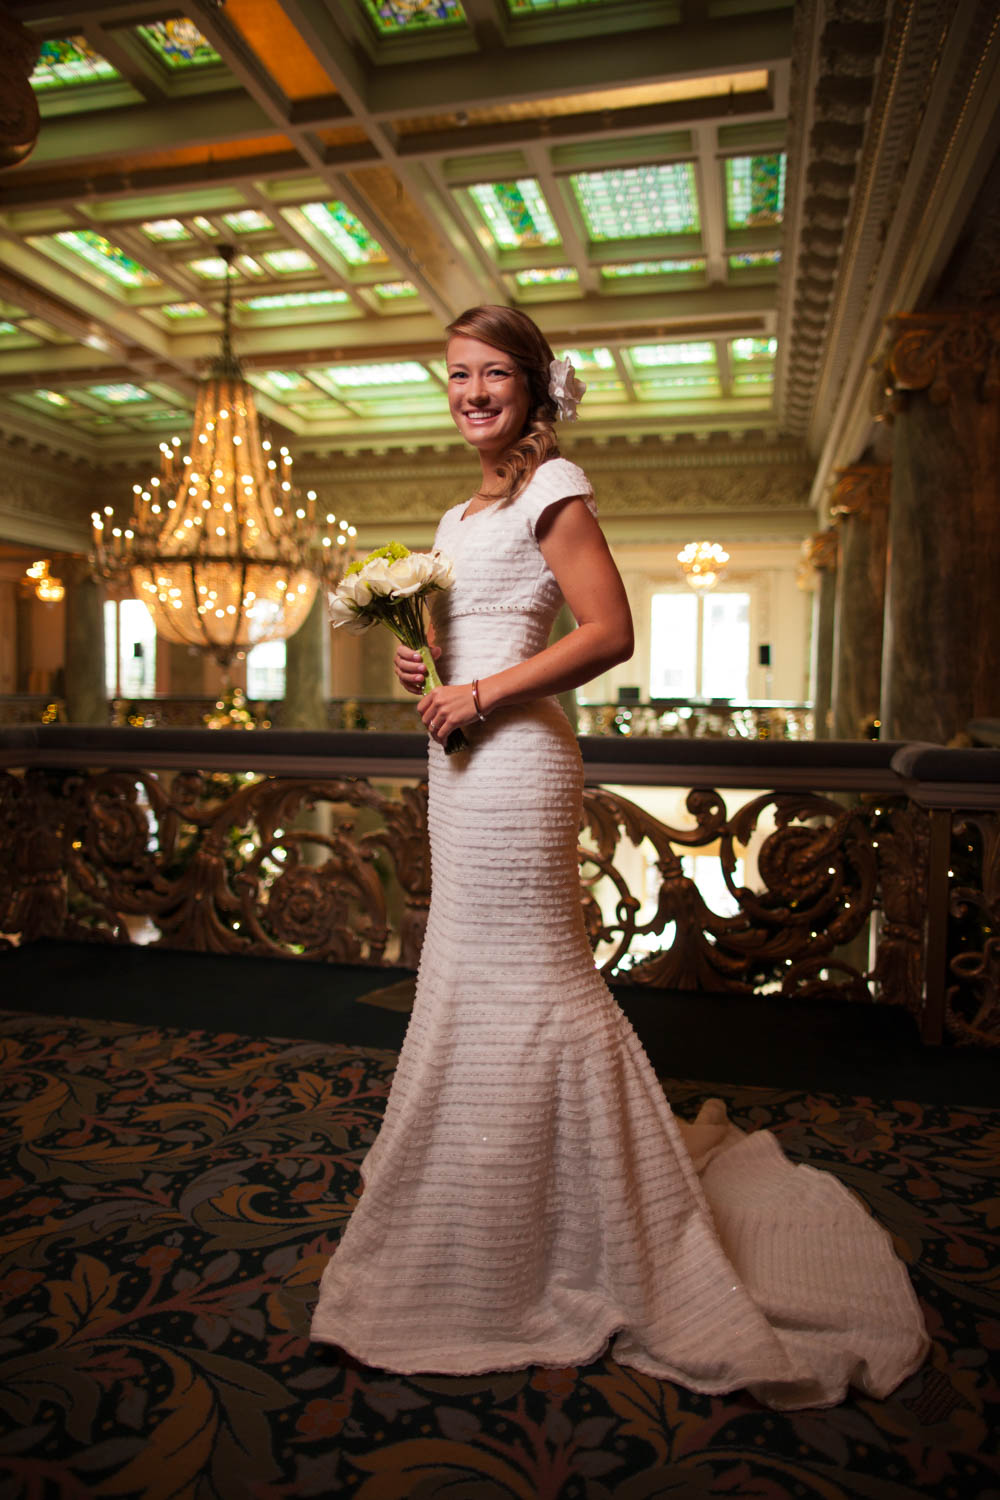 Kelli Jo's bridals at the Joseph Smith Memorial Building